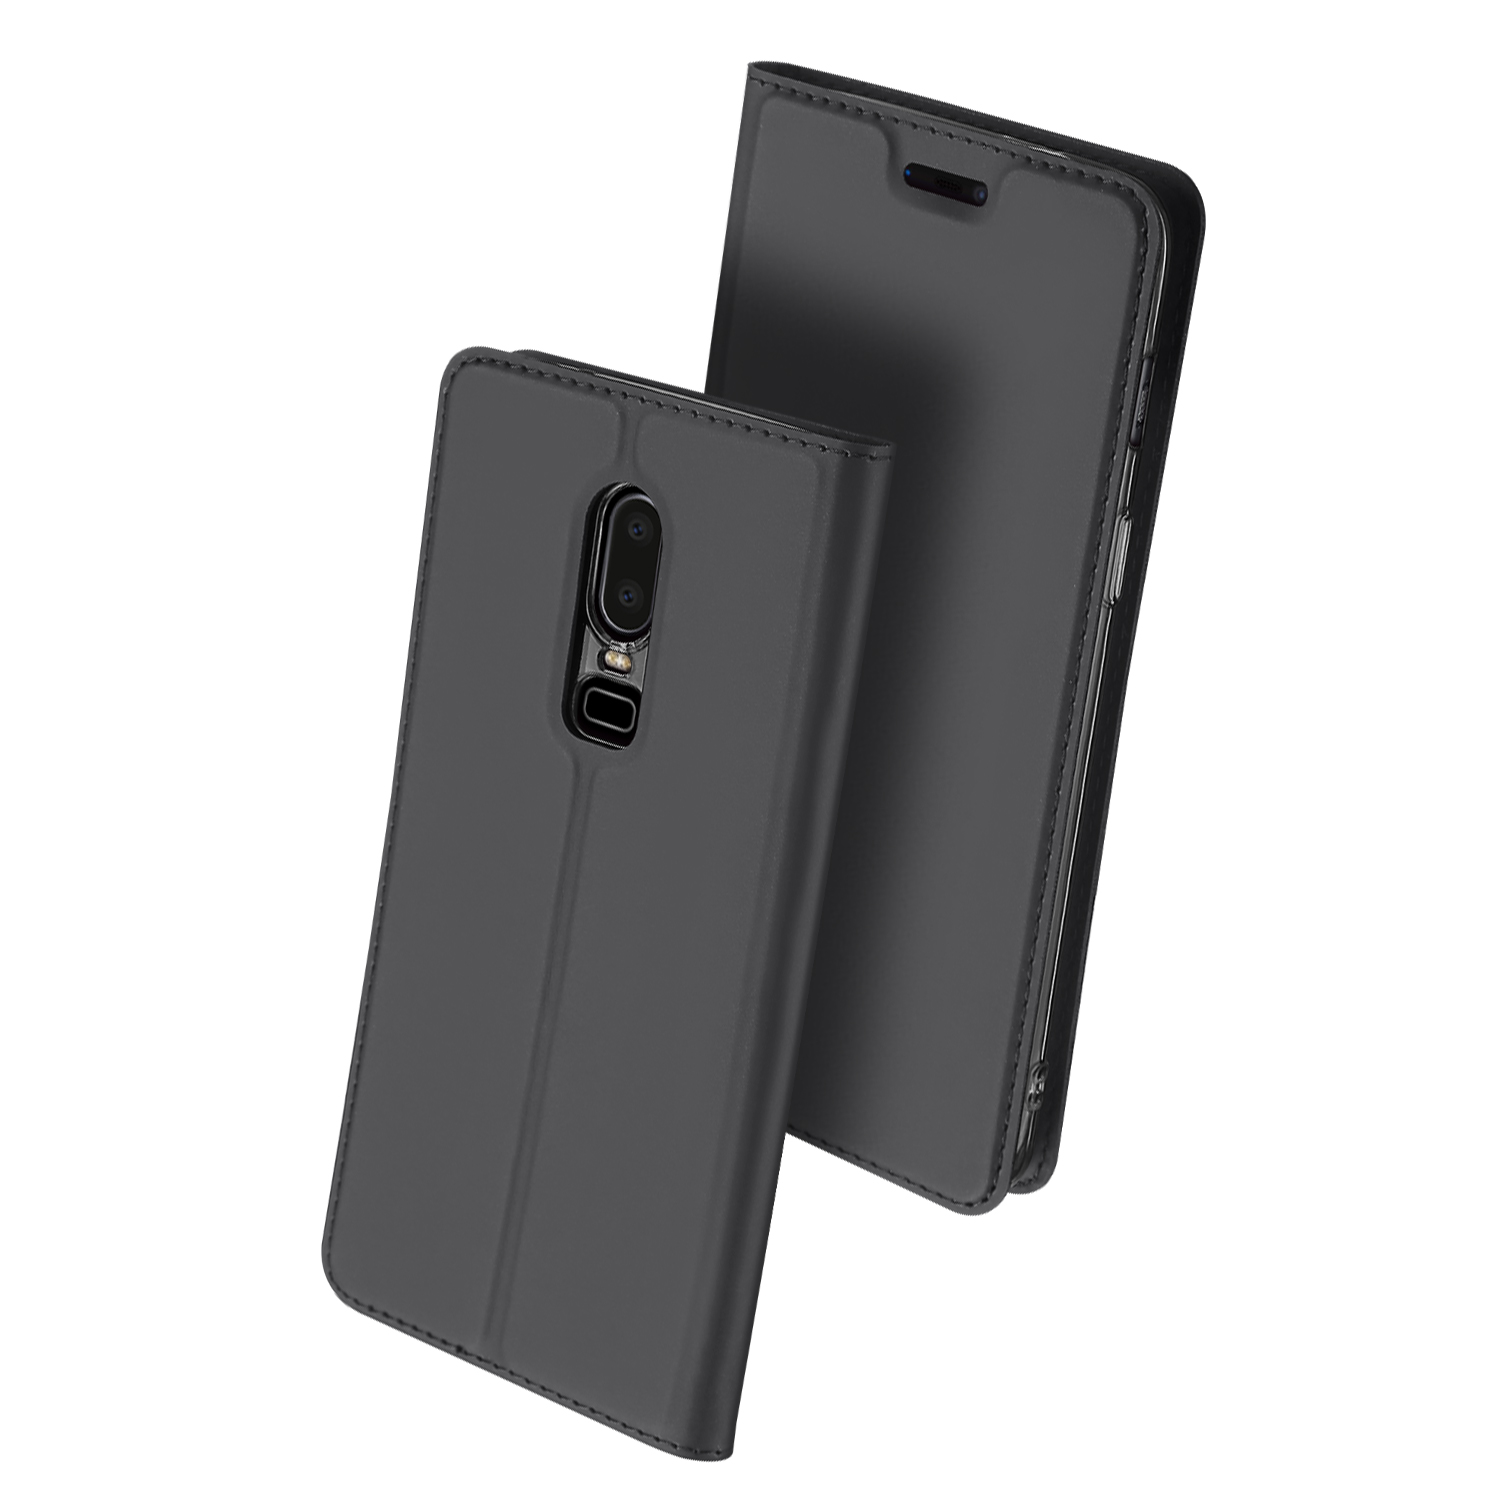 Flip Case for Oneplus 6 1+6 PU Leather TPU Soft Bumper Protective Card Slot Holder Pocket Wallet Stand Cover Mobile Phone Bag